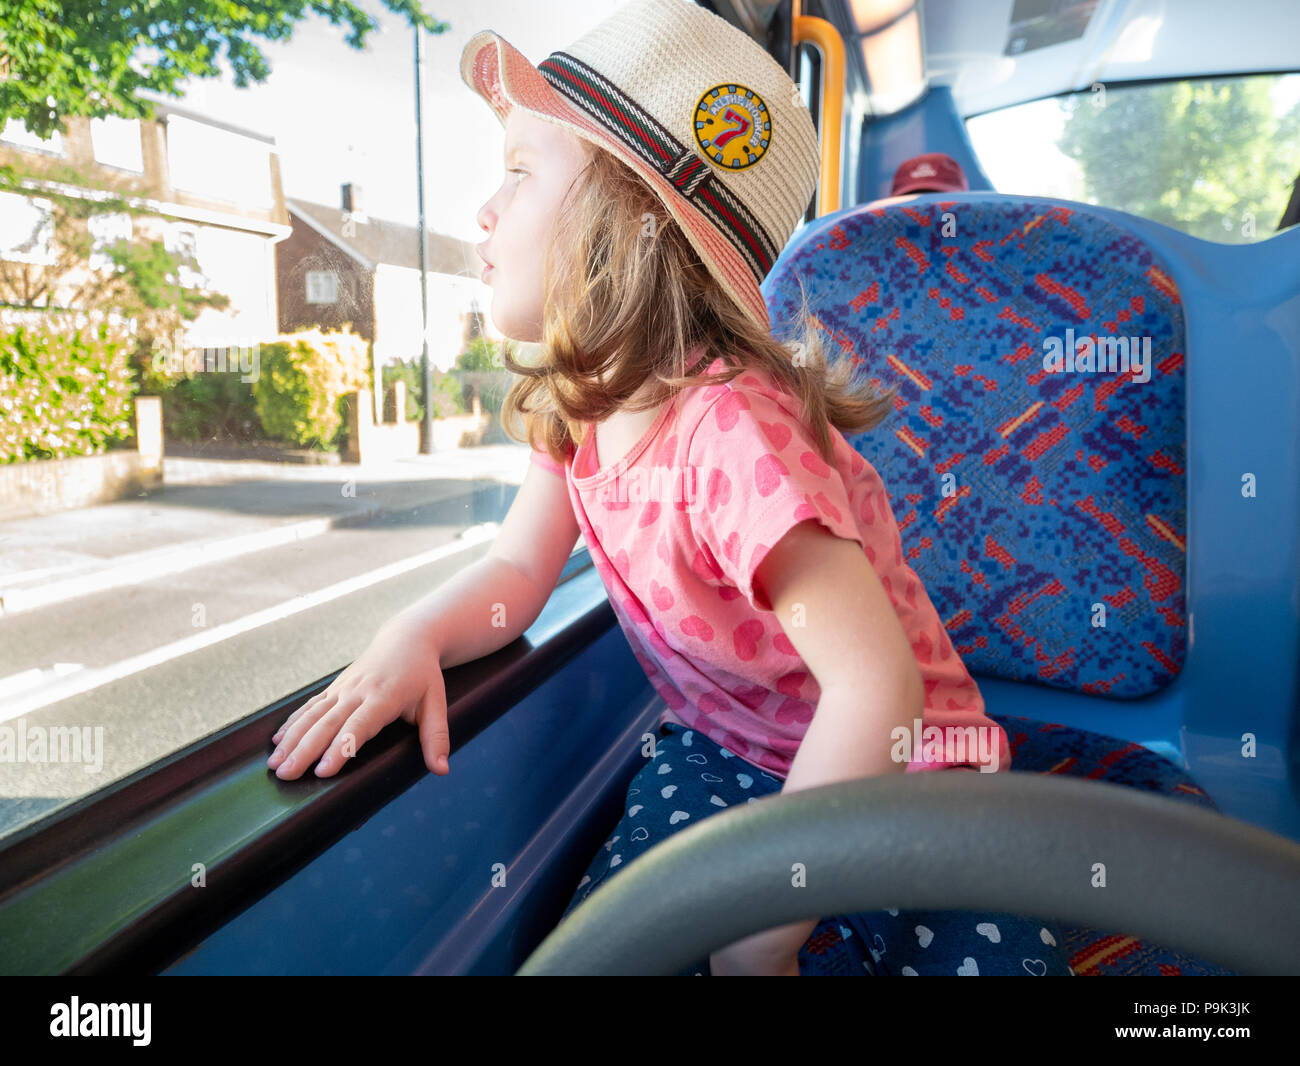 Young three year old girl looking out of a bus window, London, UK - Stock Image